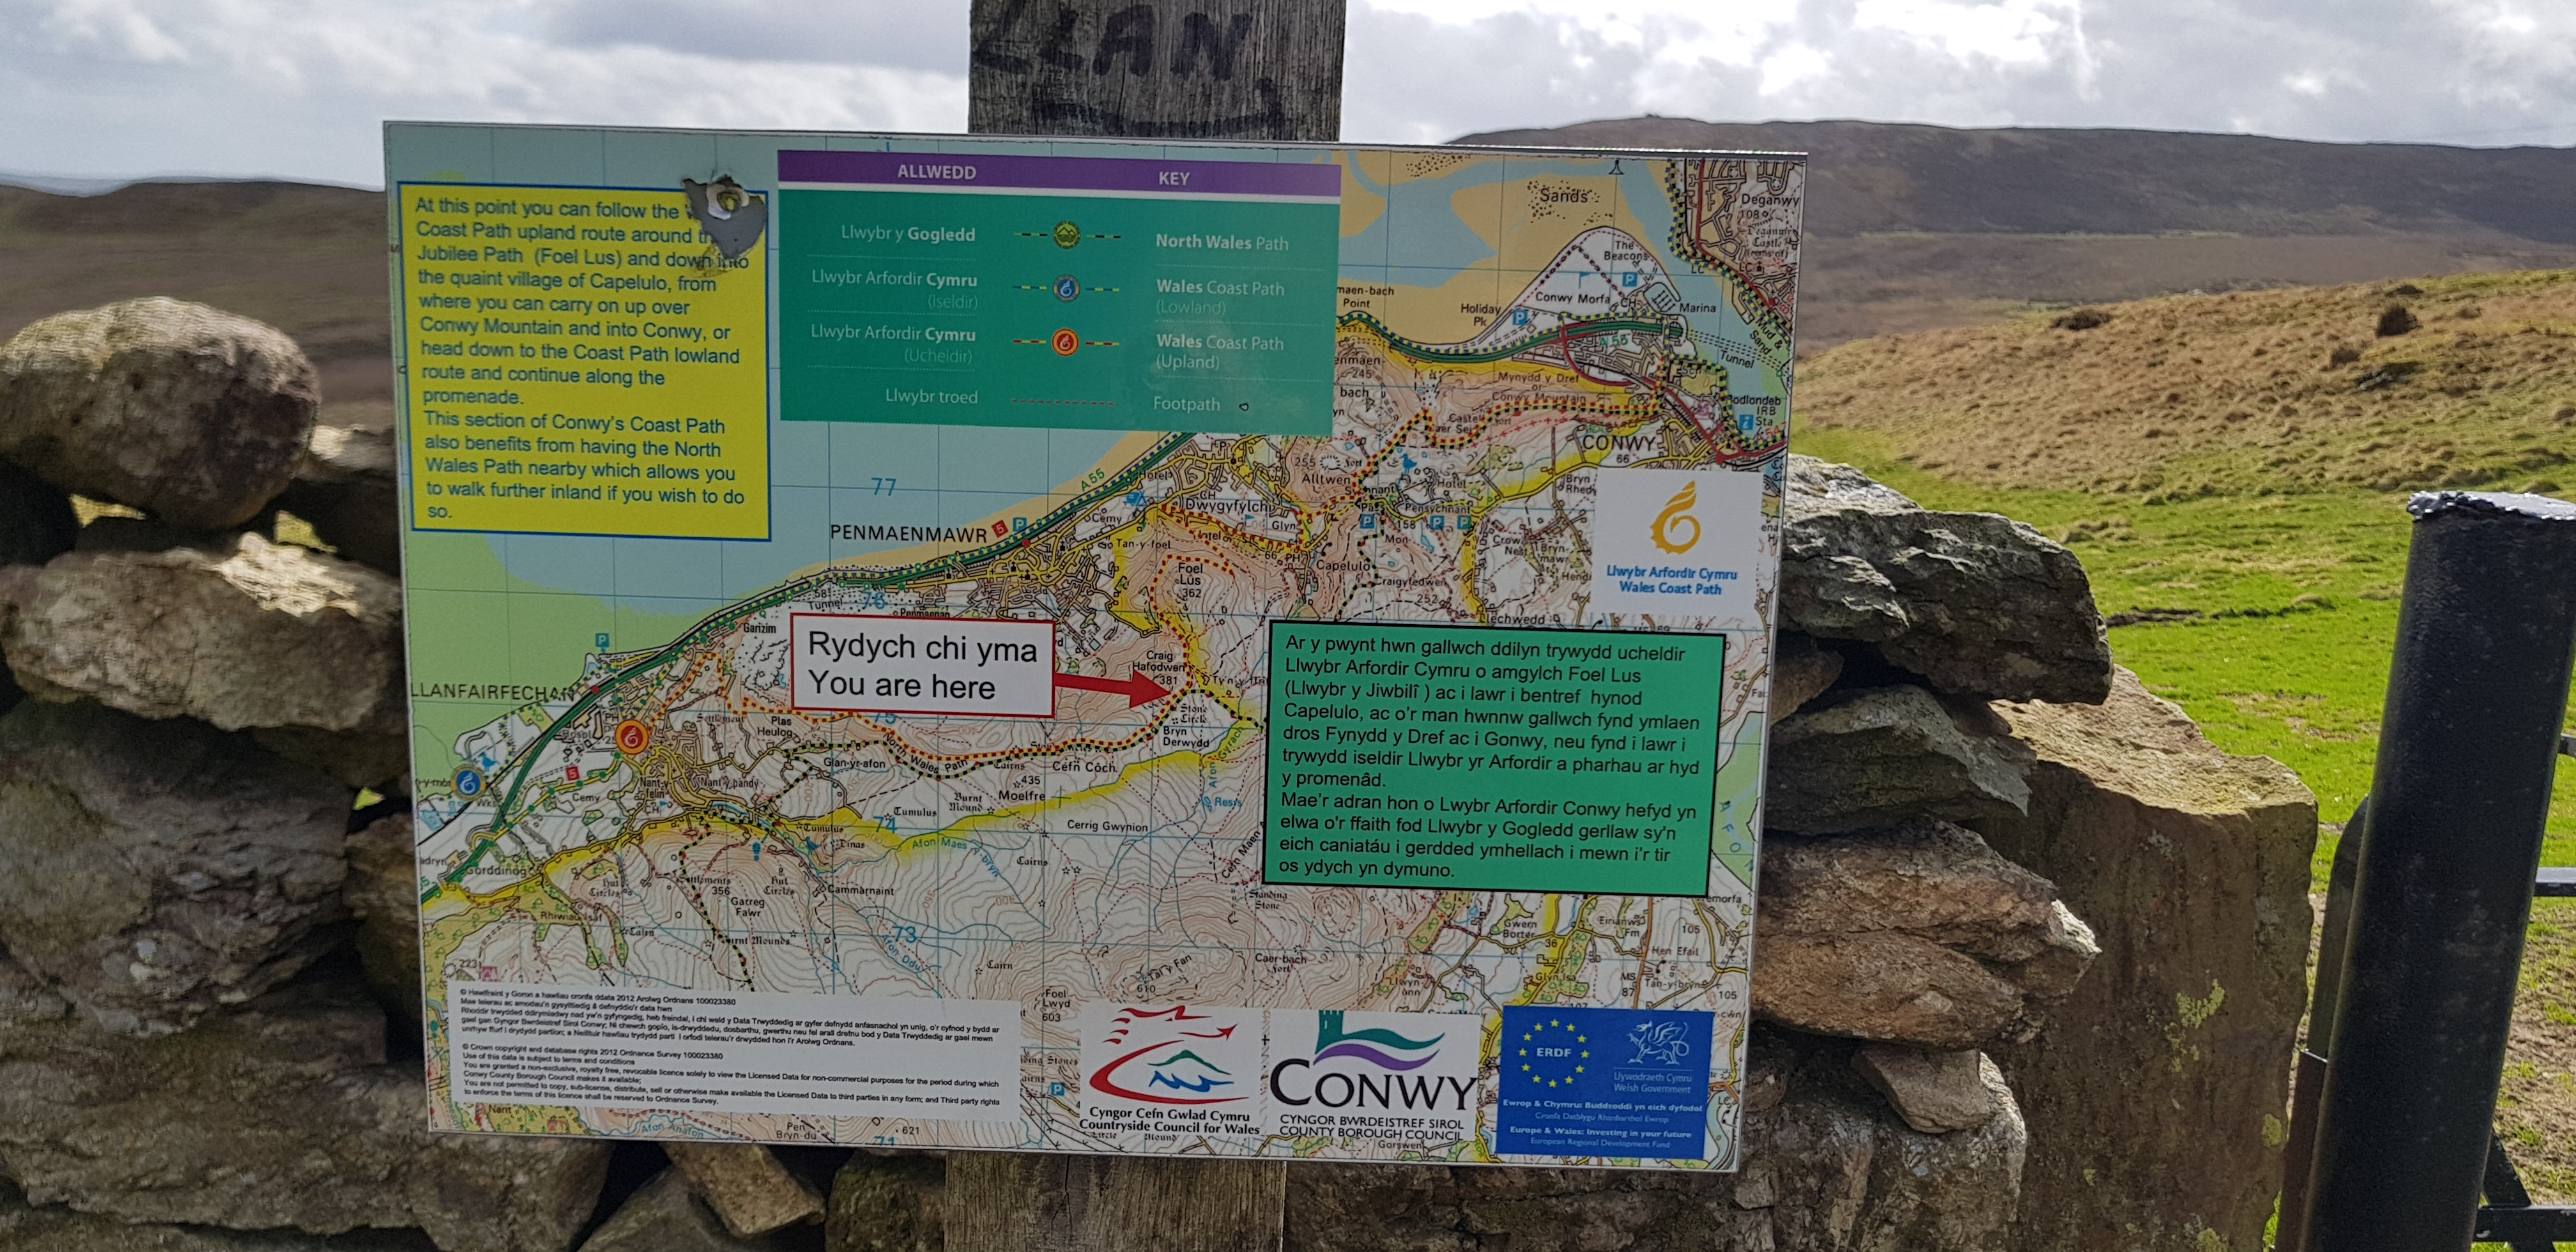 Map of paths near Conwy